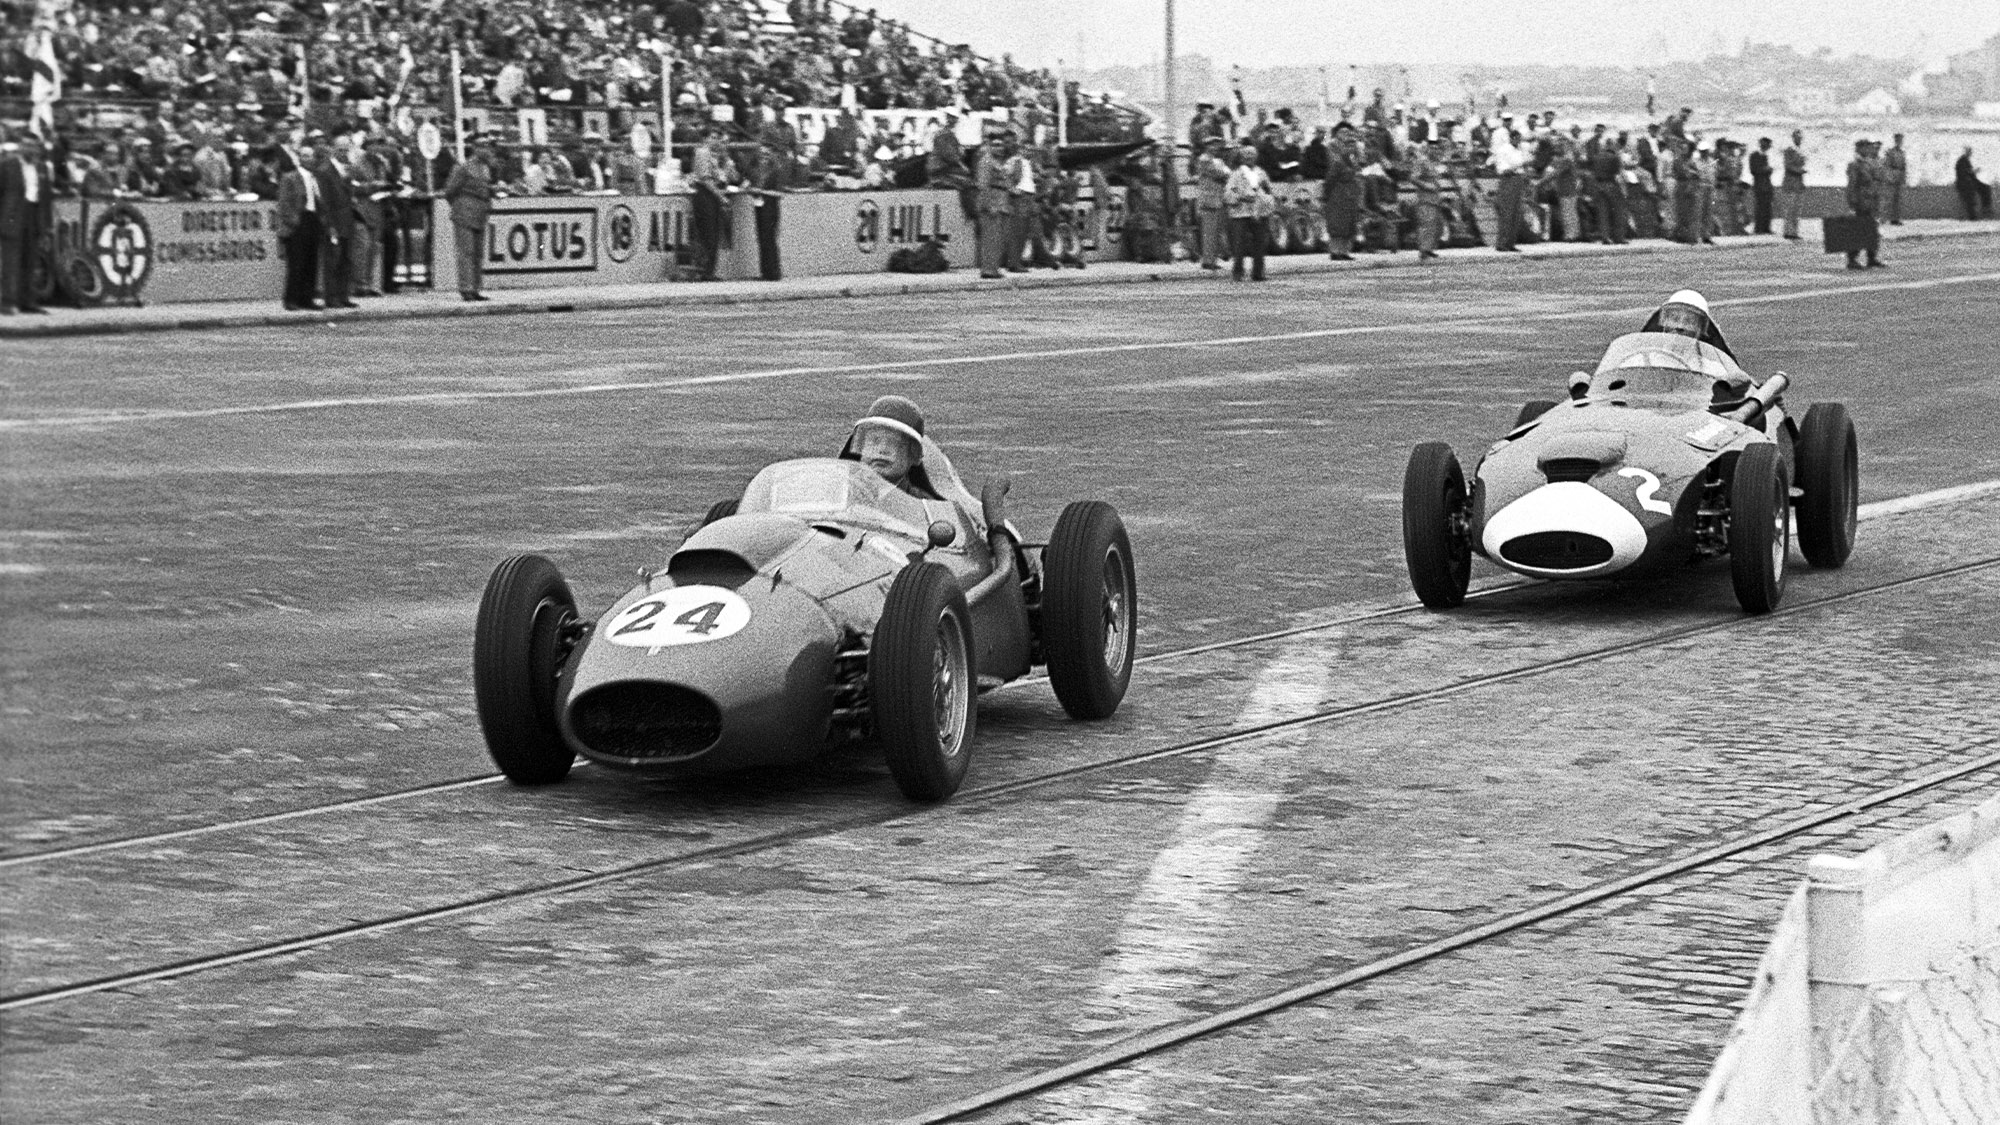 1958 Portuguese Grand Prix Hawthorn and Moss